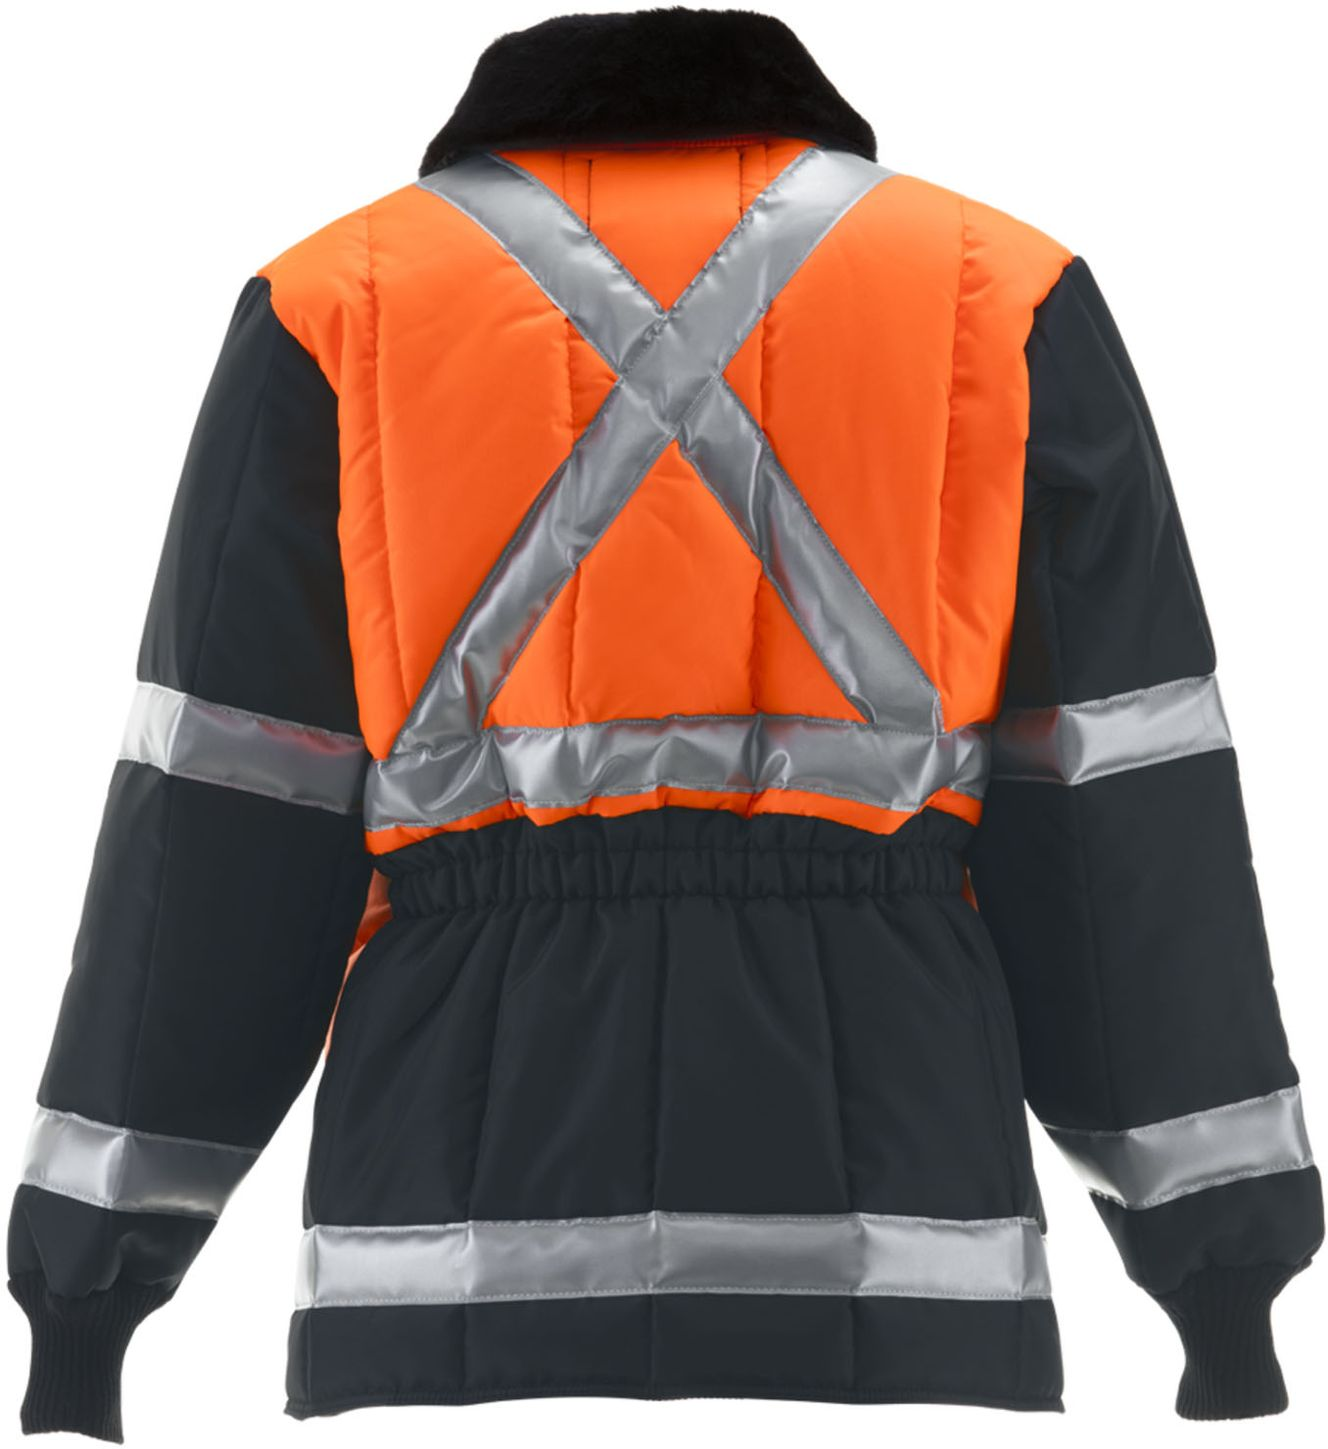 RefrigiWear 0342 - HiVis Iron-Tuff Two-Tone Jackoat Orange-Navy Back